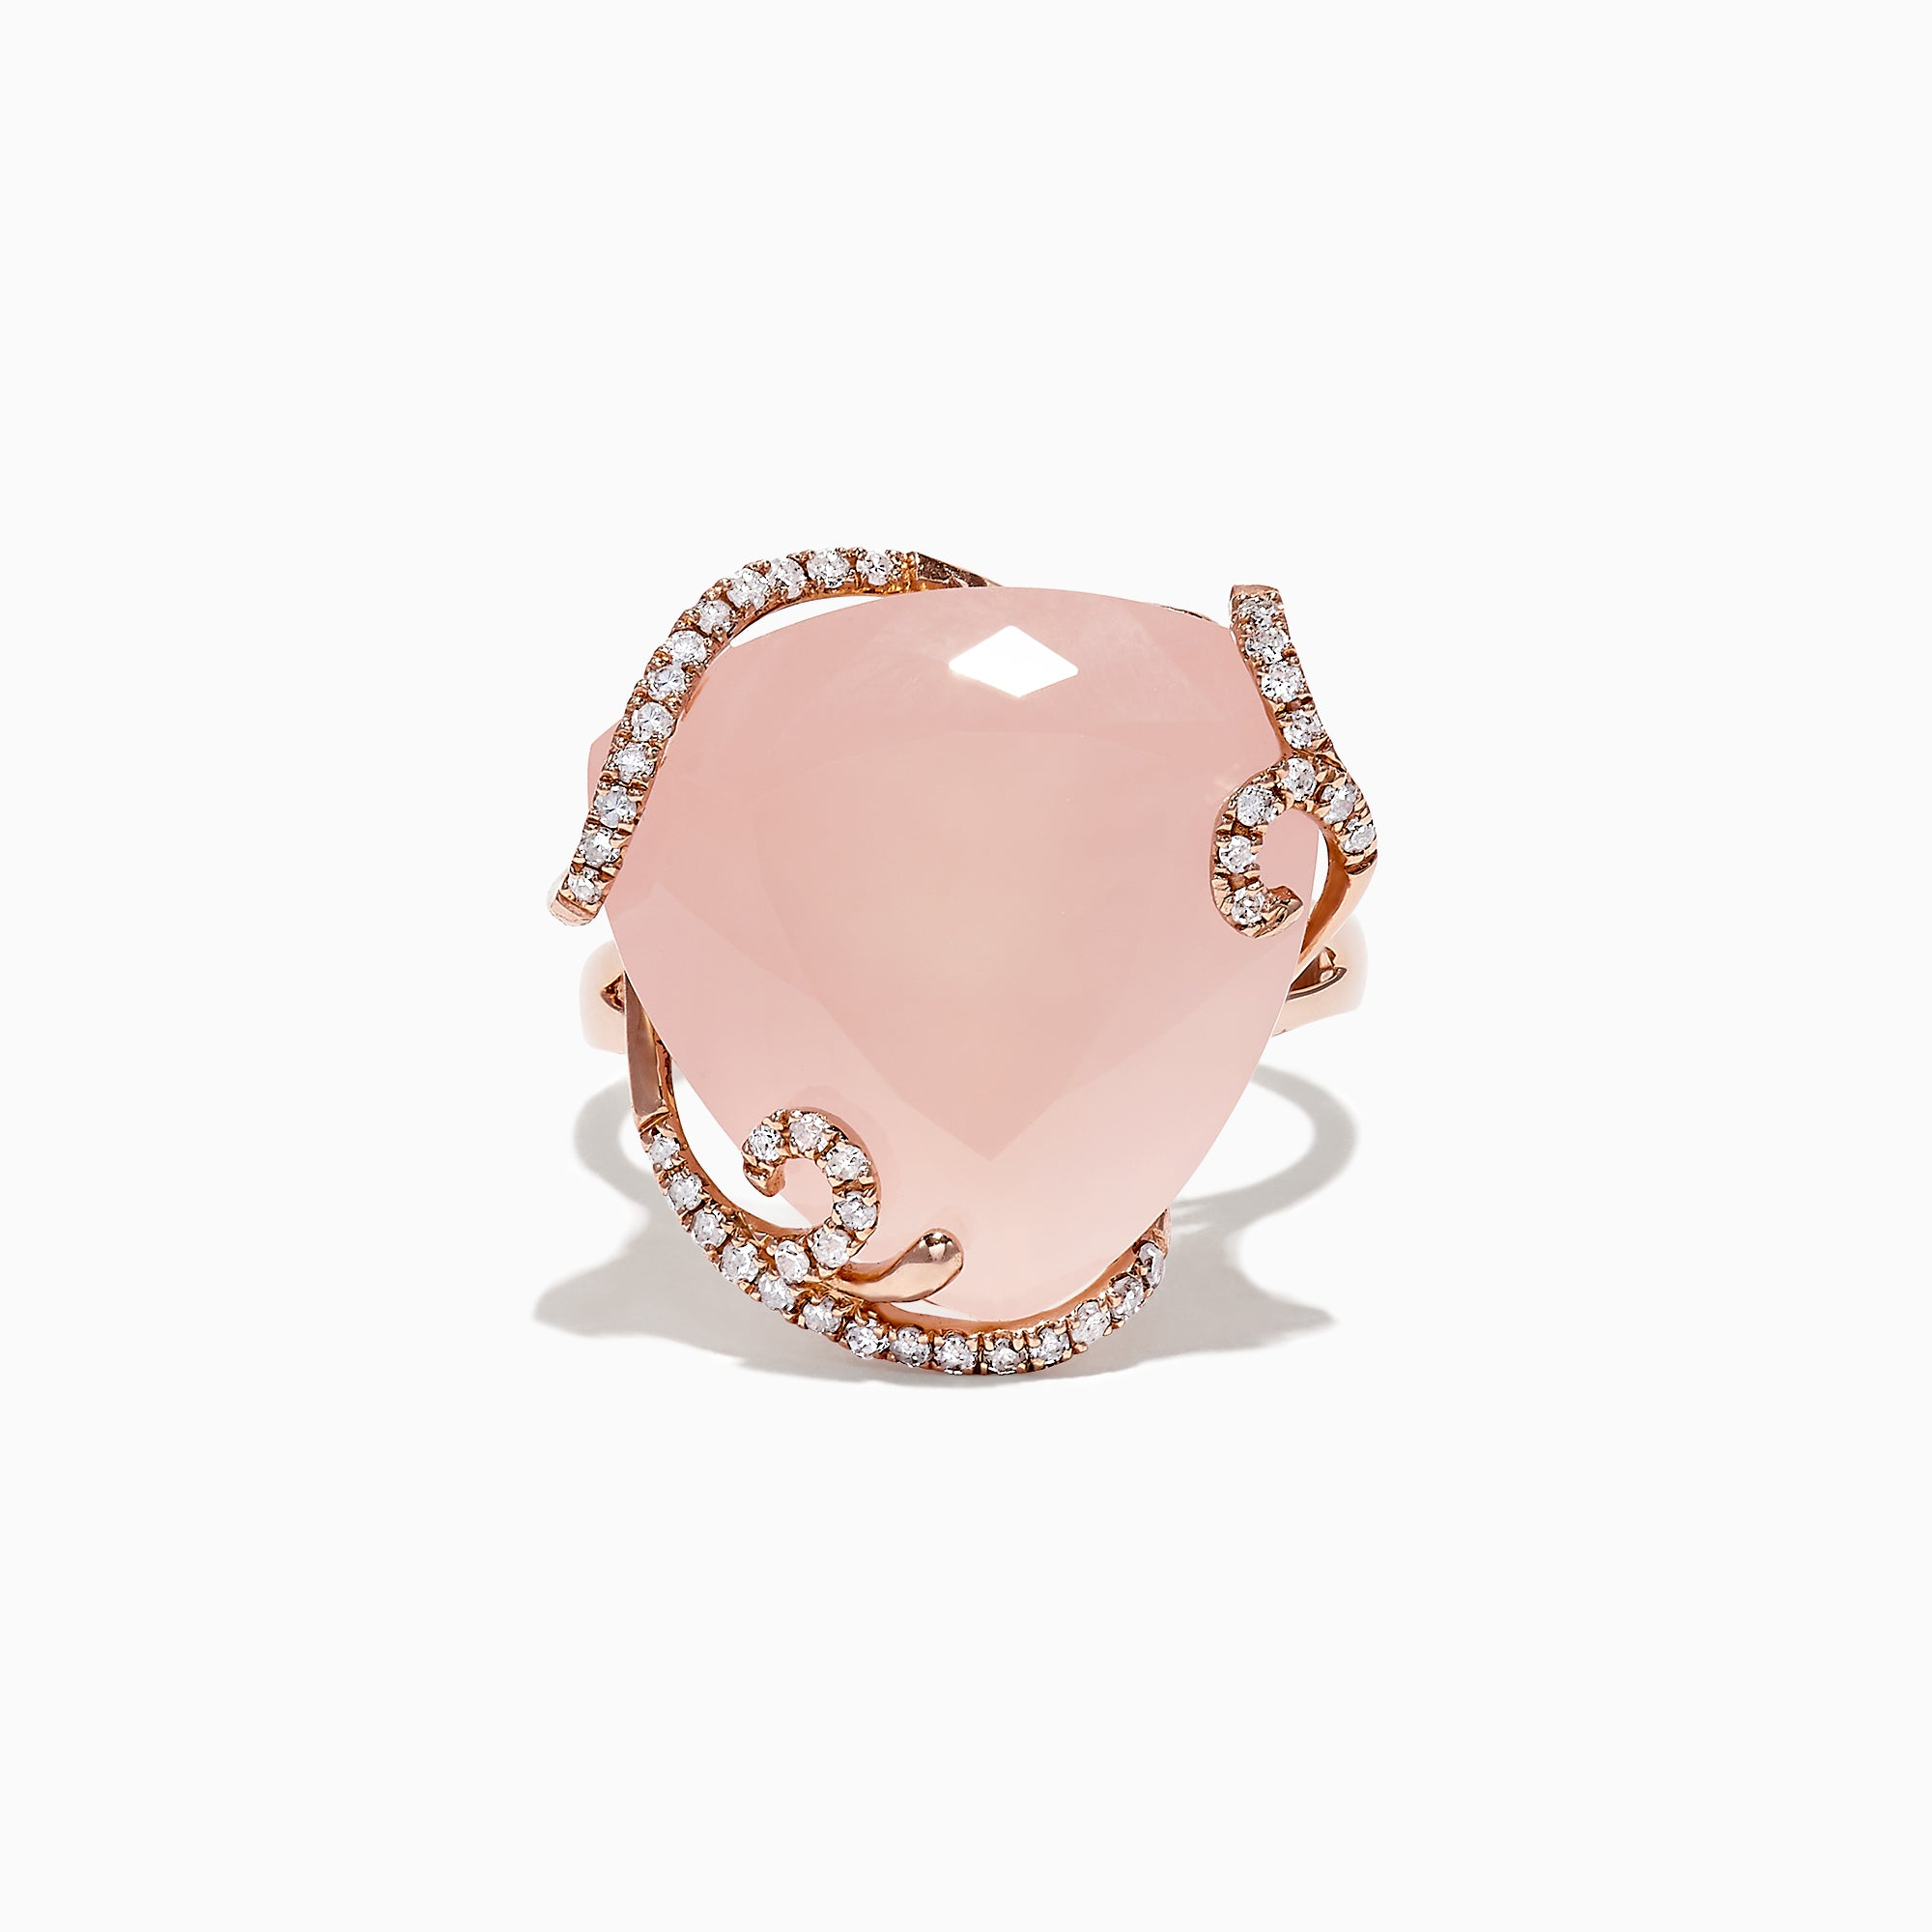 14K Rose Gold Diamond and Rose Quartz Ring, 16.45 TCW